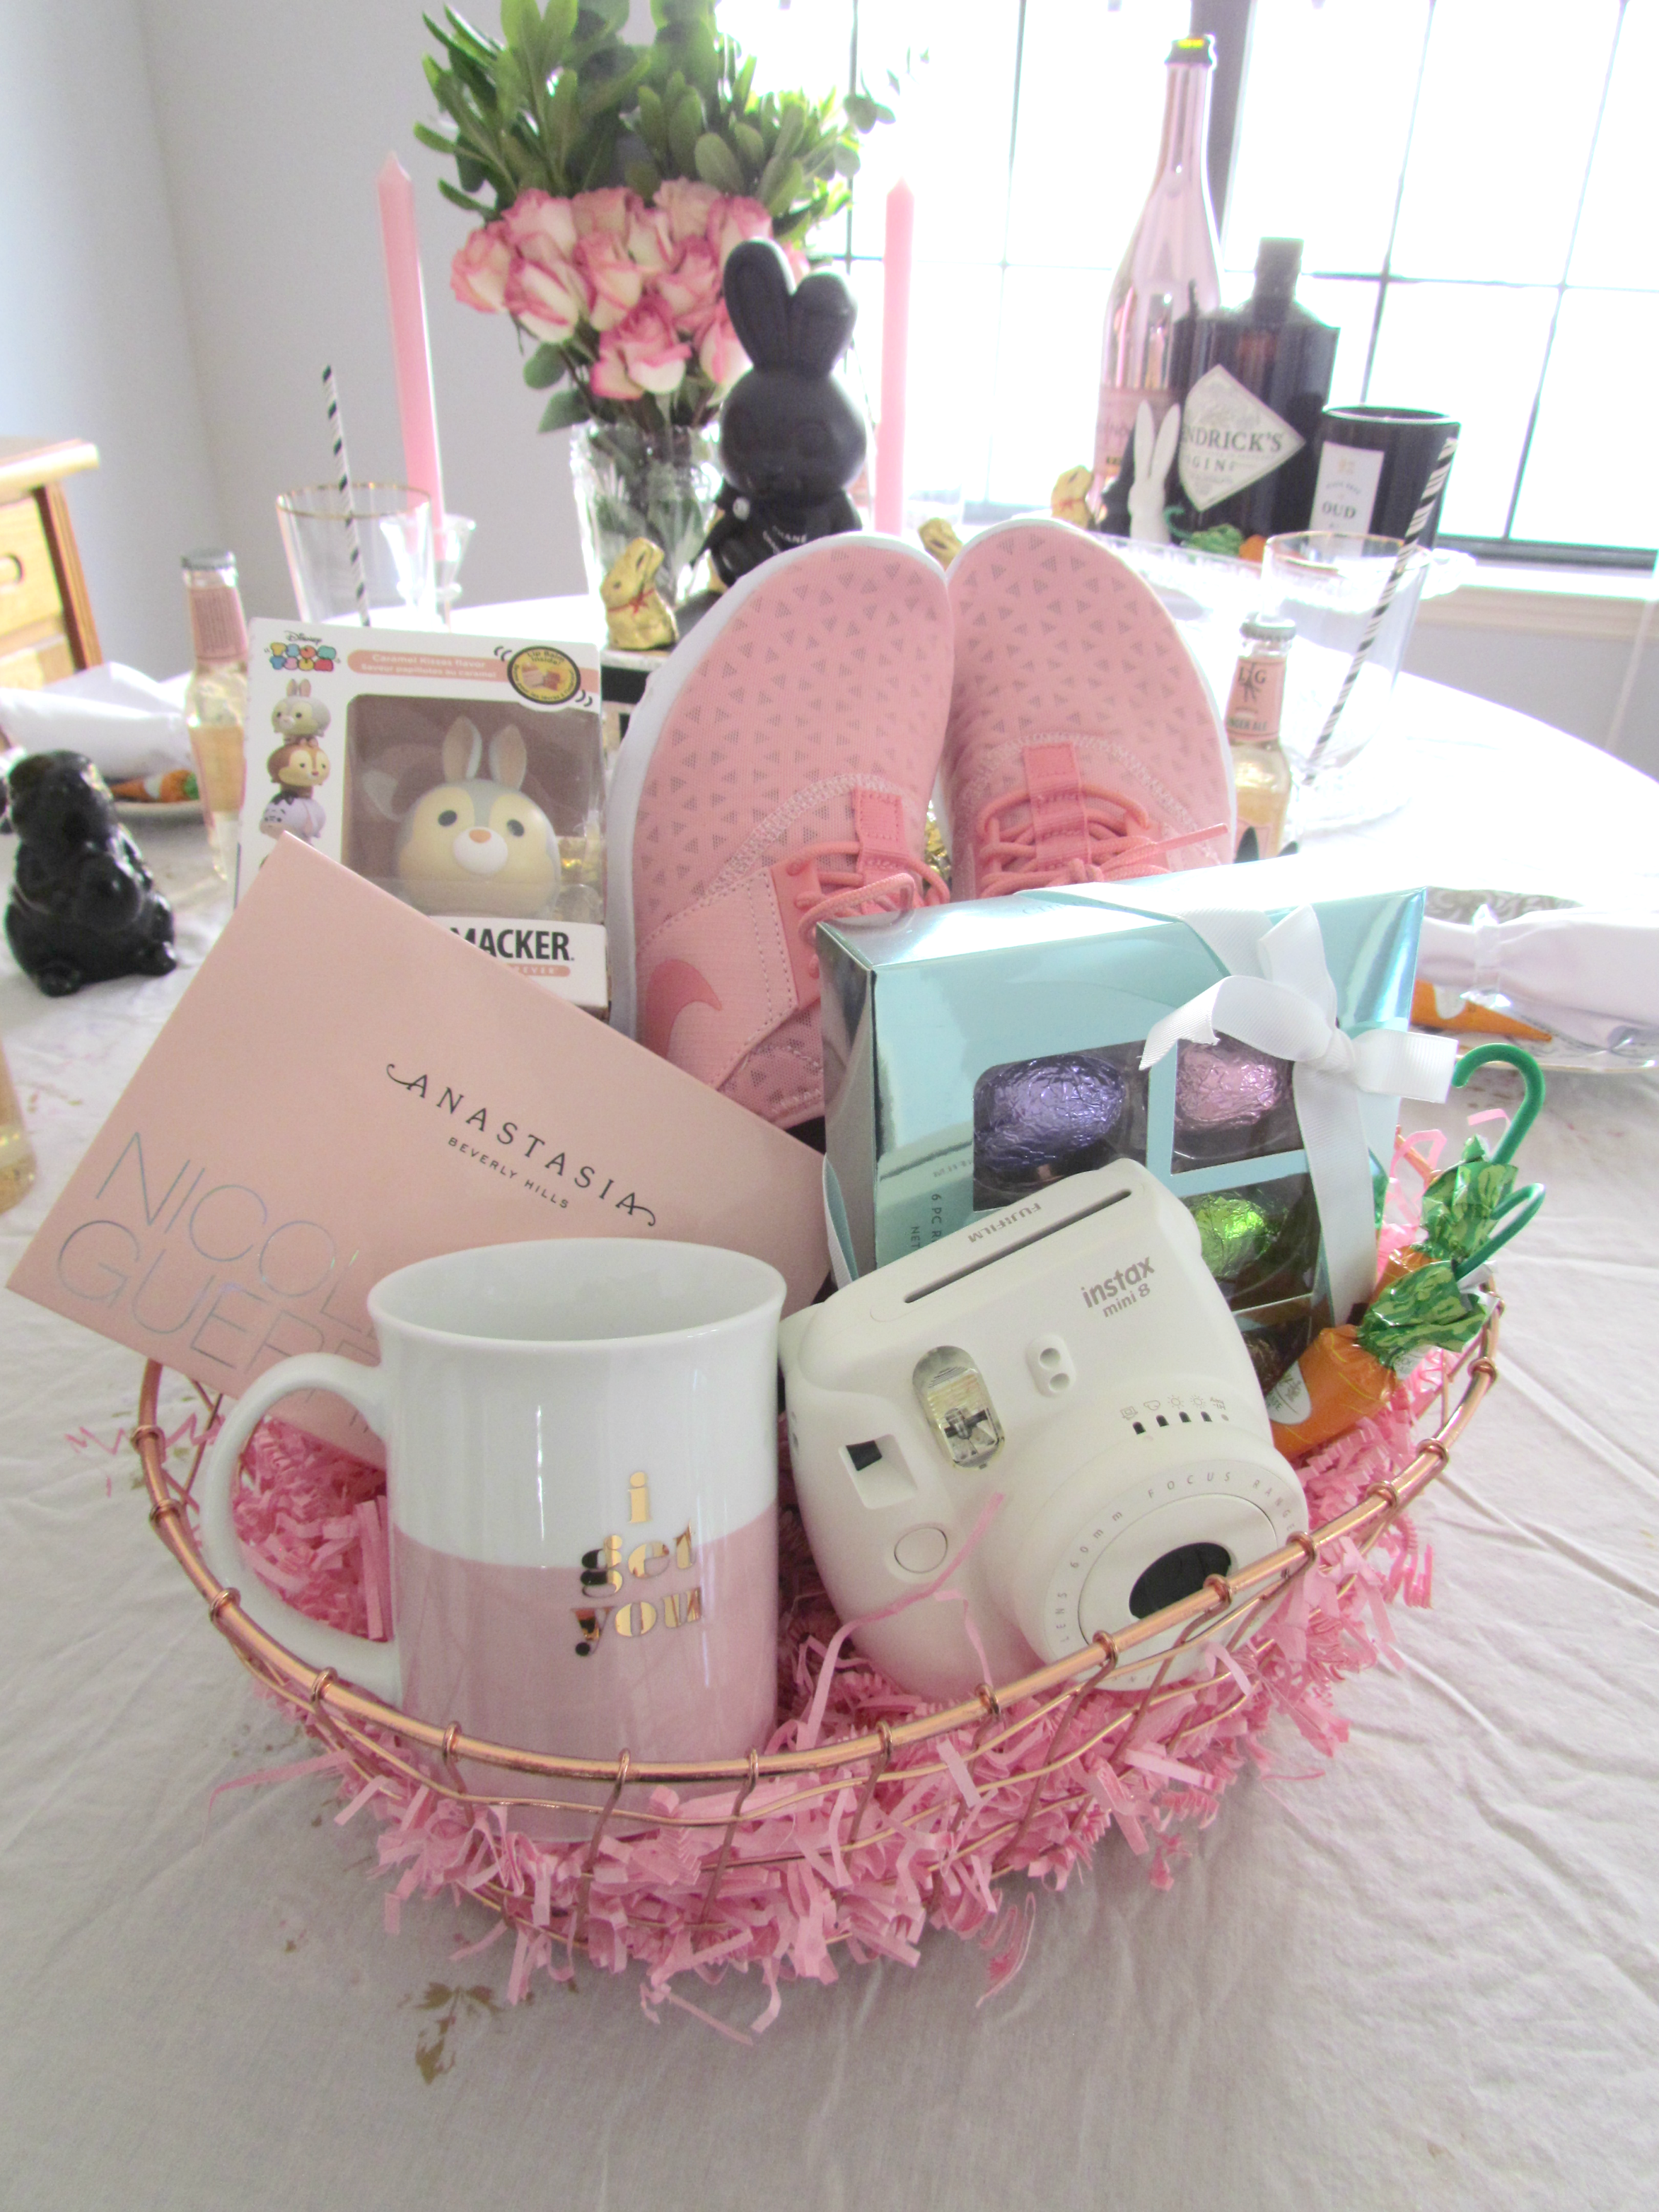 Grown Up #Girlboss Easter Basket Inspiration!